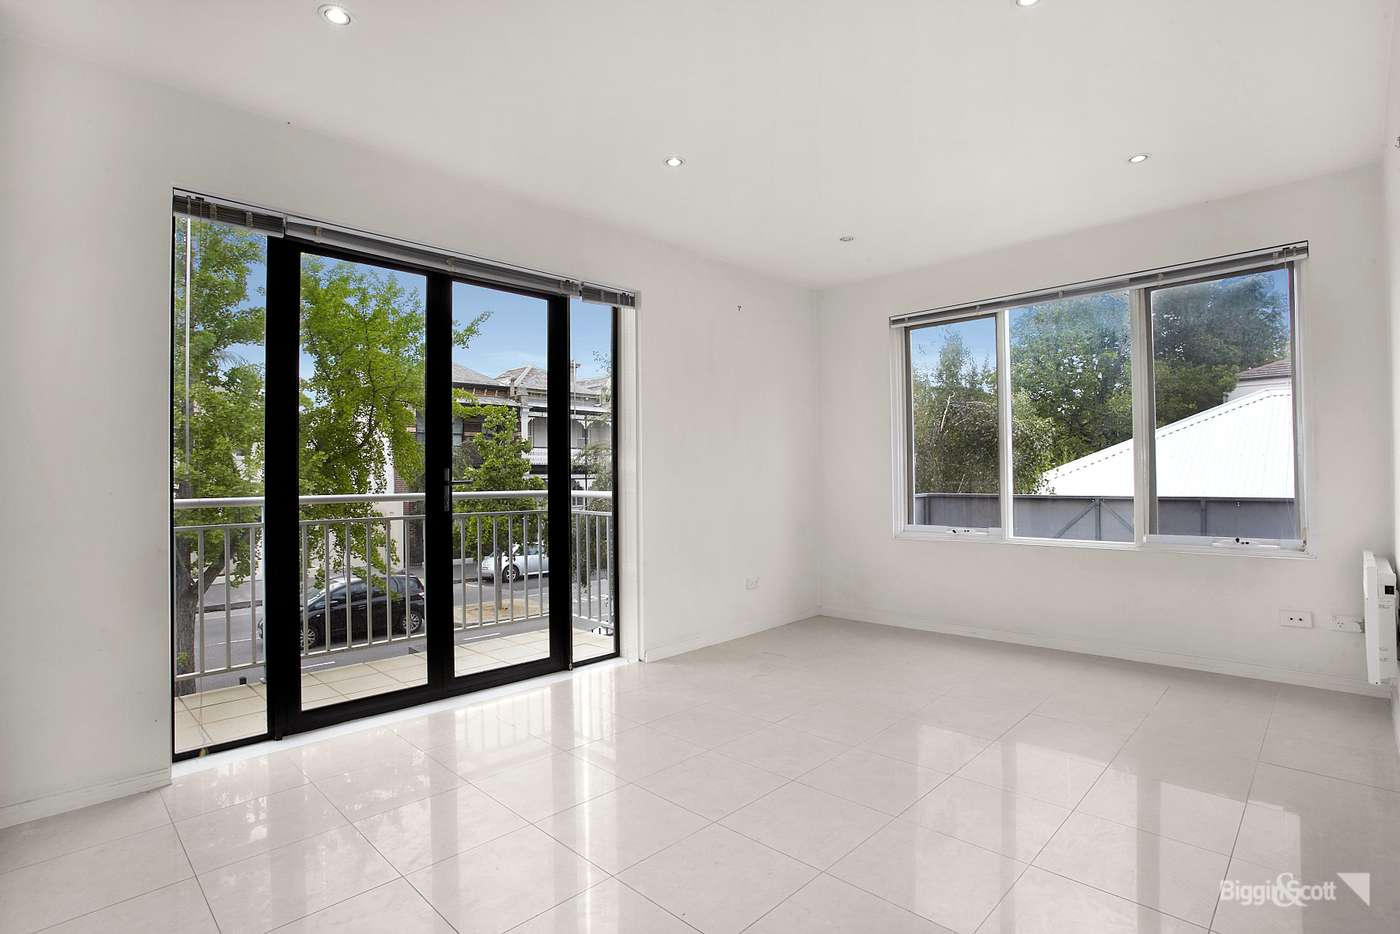 Main view of Homely apartment listing, 6/37 Domain Street, South Yarra VIC 3141